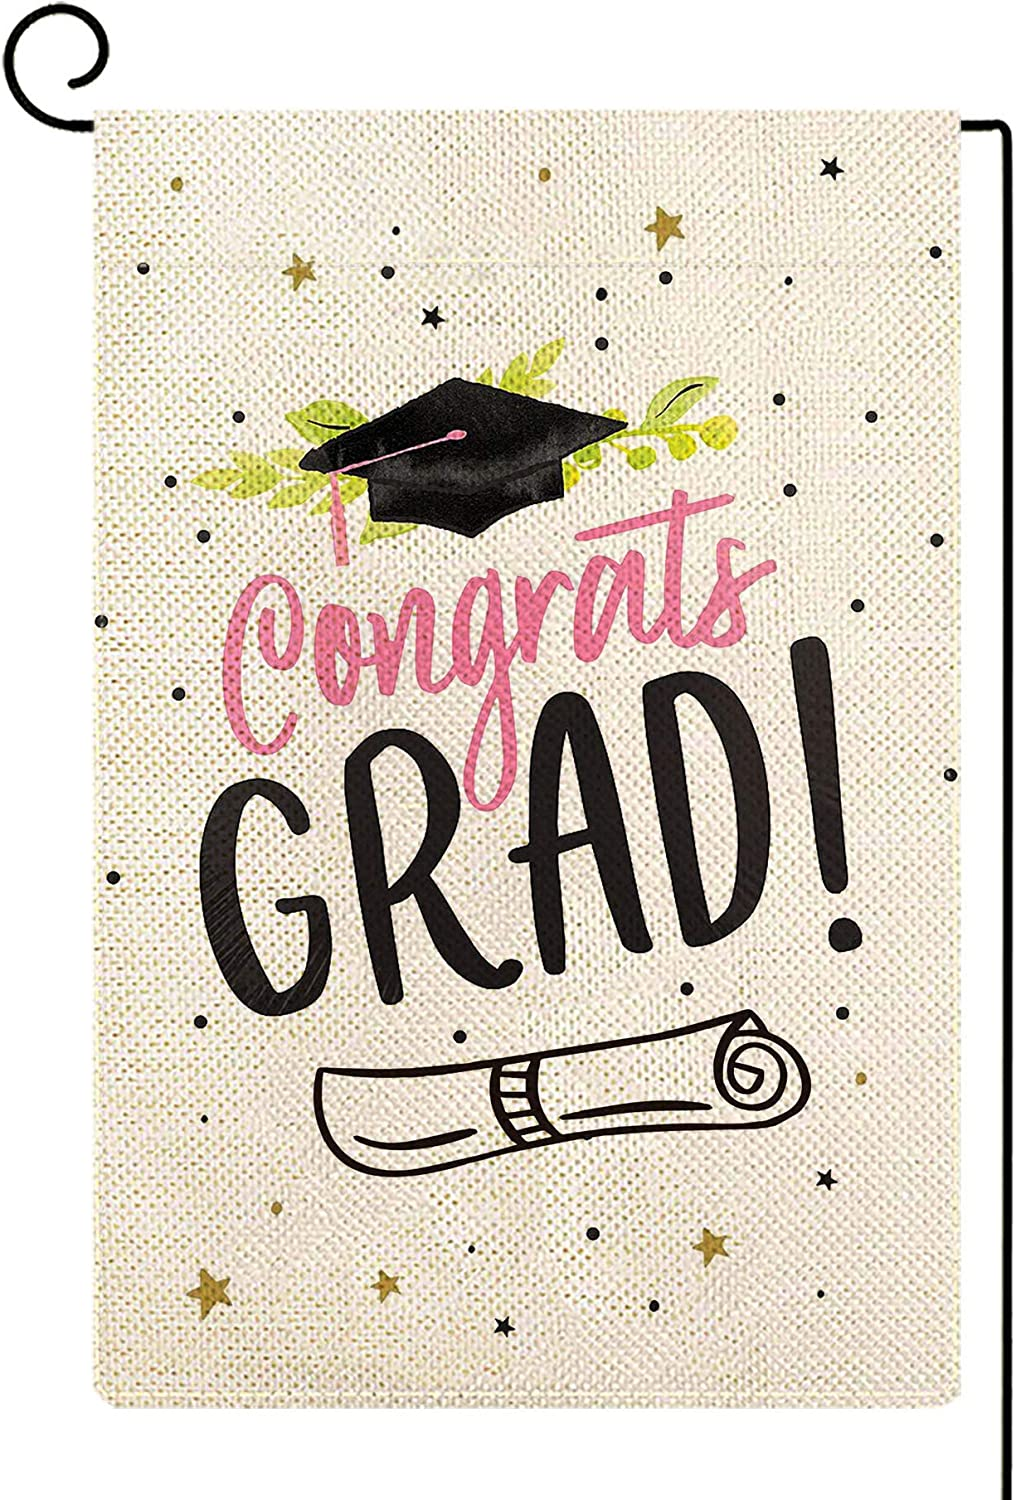 Baccessor Congratulations Graduation Garden Flag Class of 2020 Graduation Garden Flag Burlap Small Double Sided School Yard Flag Banner Sign for Outdoor Home Party Grad Holiday 12.5 x 18 Inch